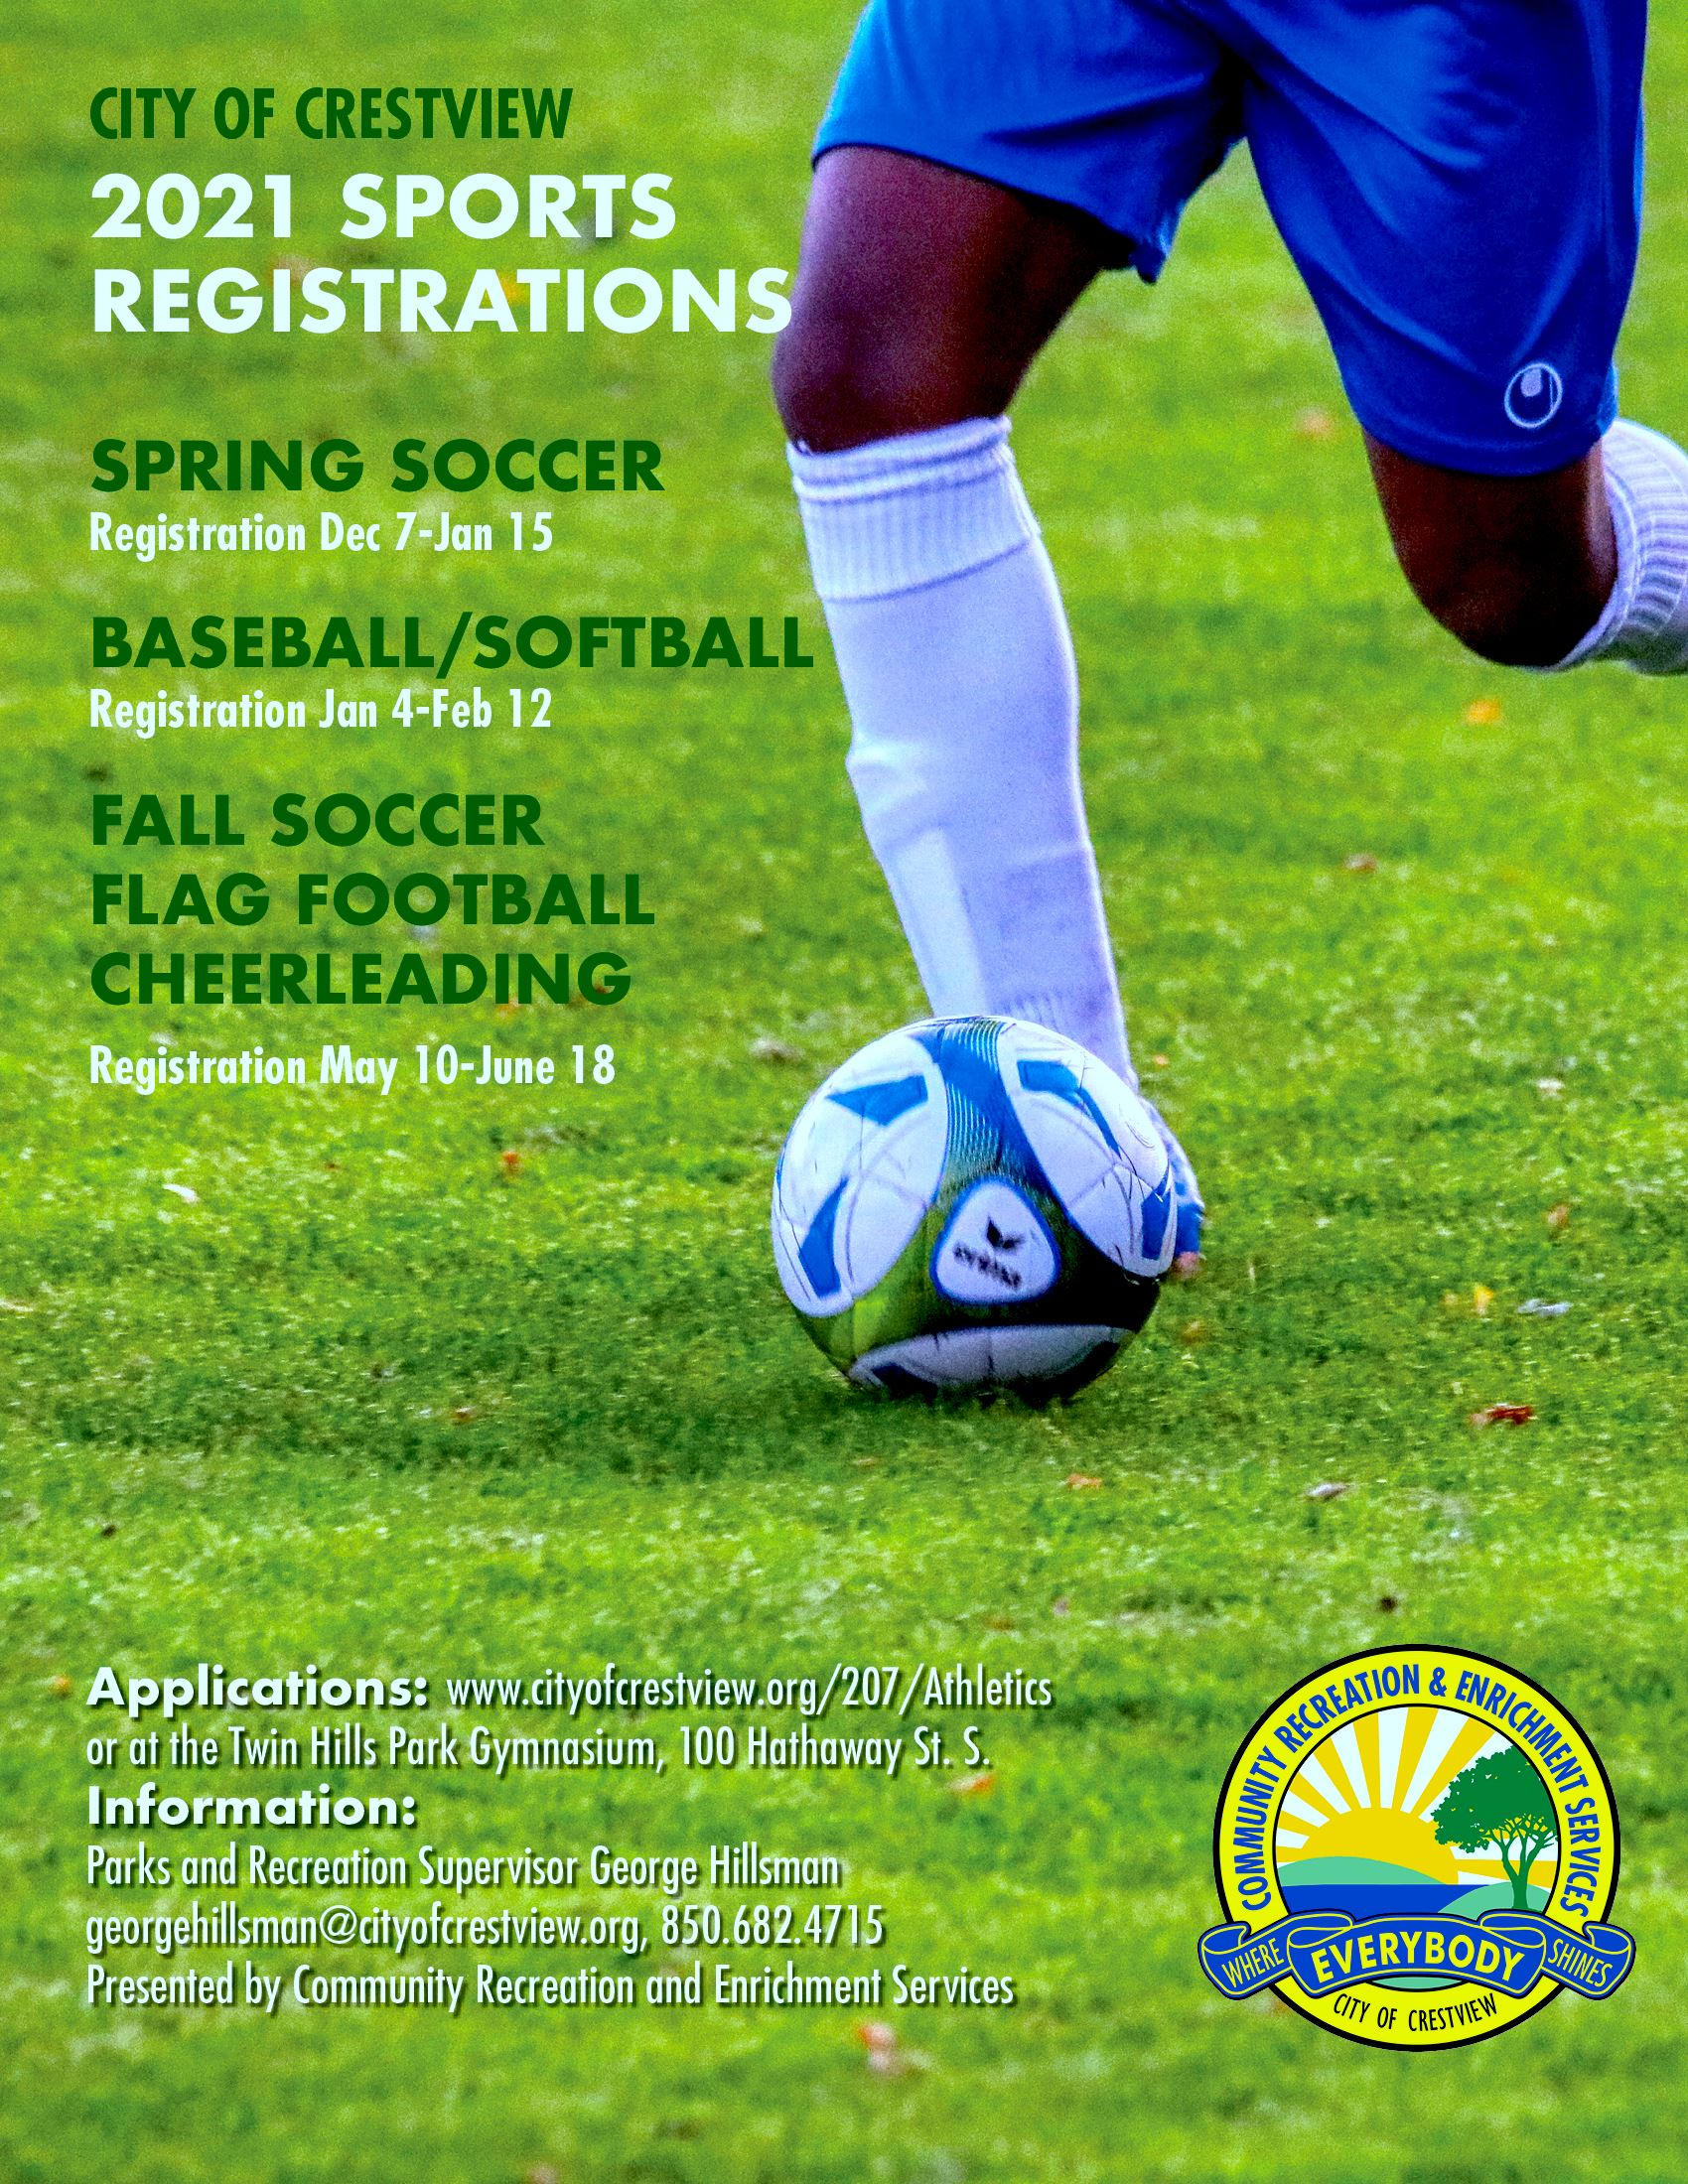 Sports registration information for 2020/2021